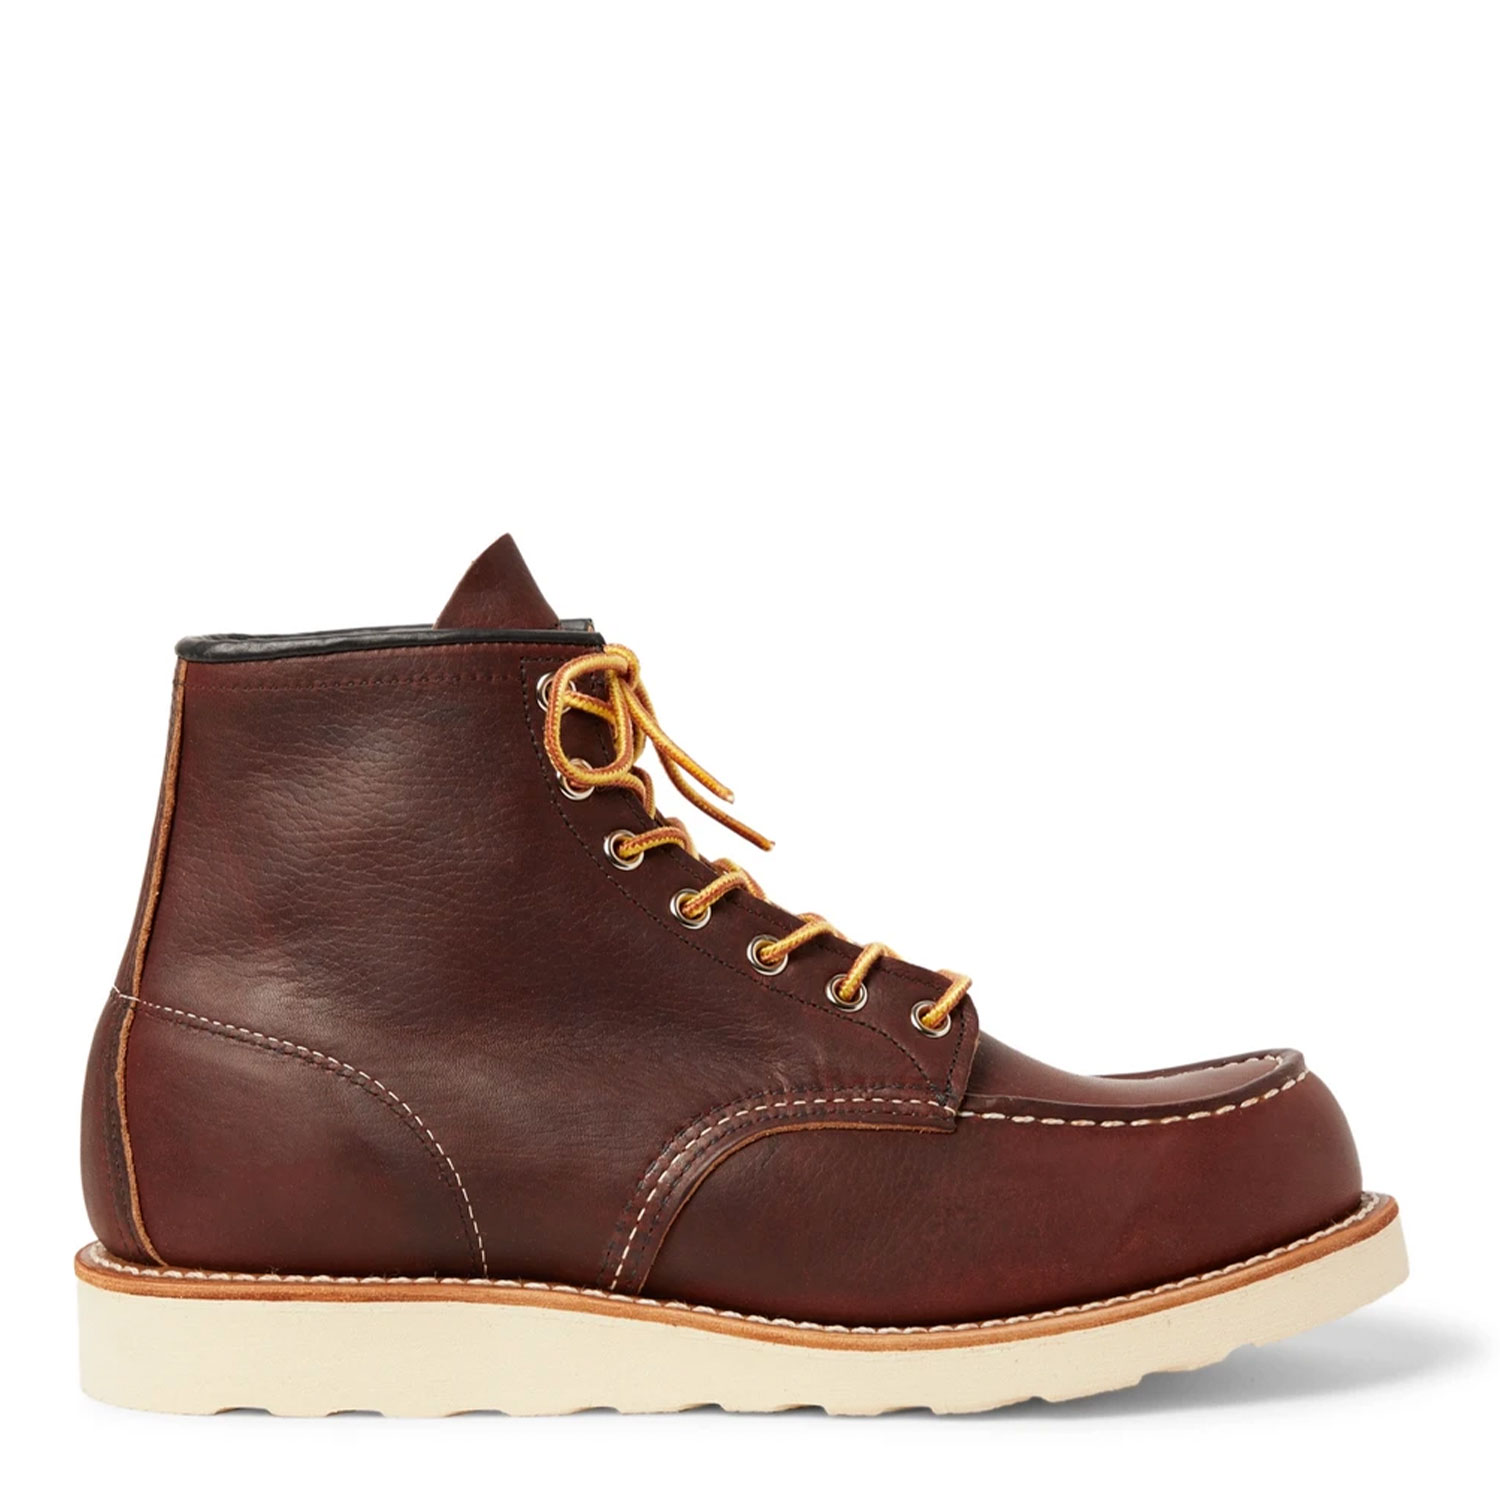 Red Wing Shoes, $280